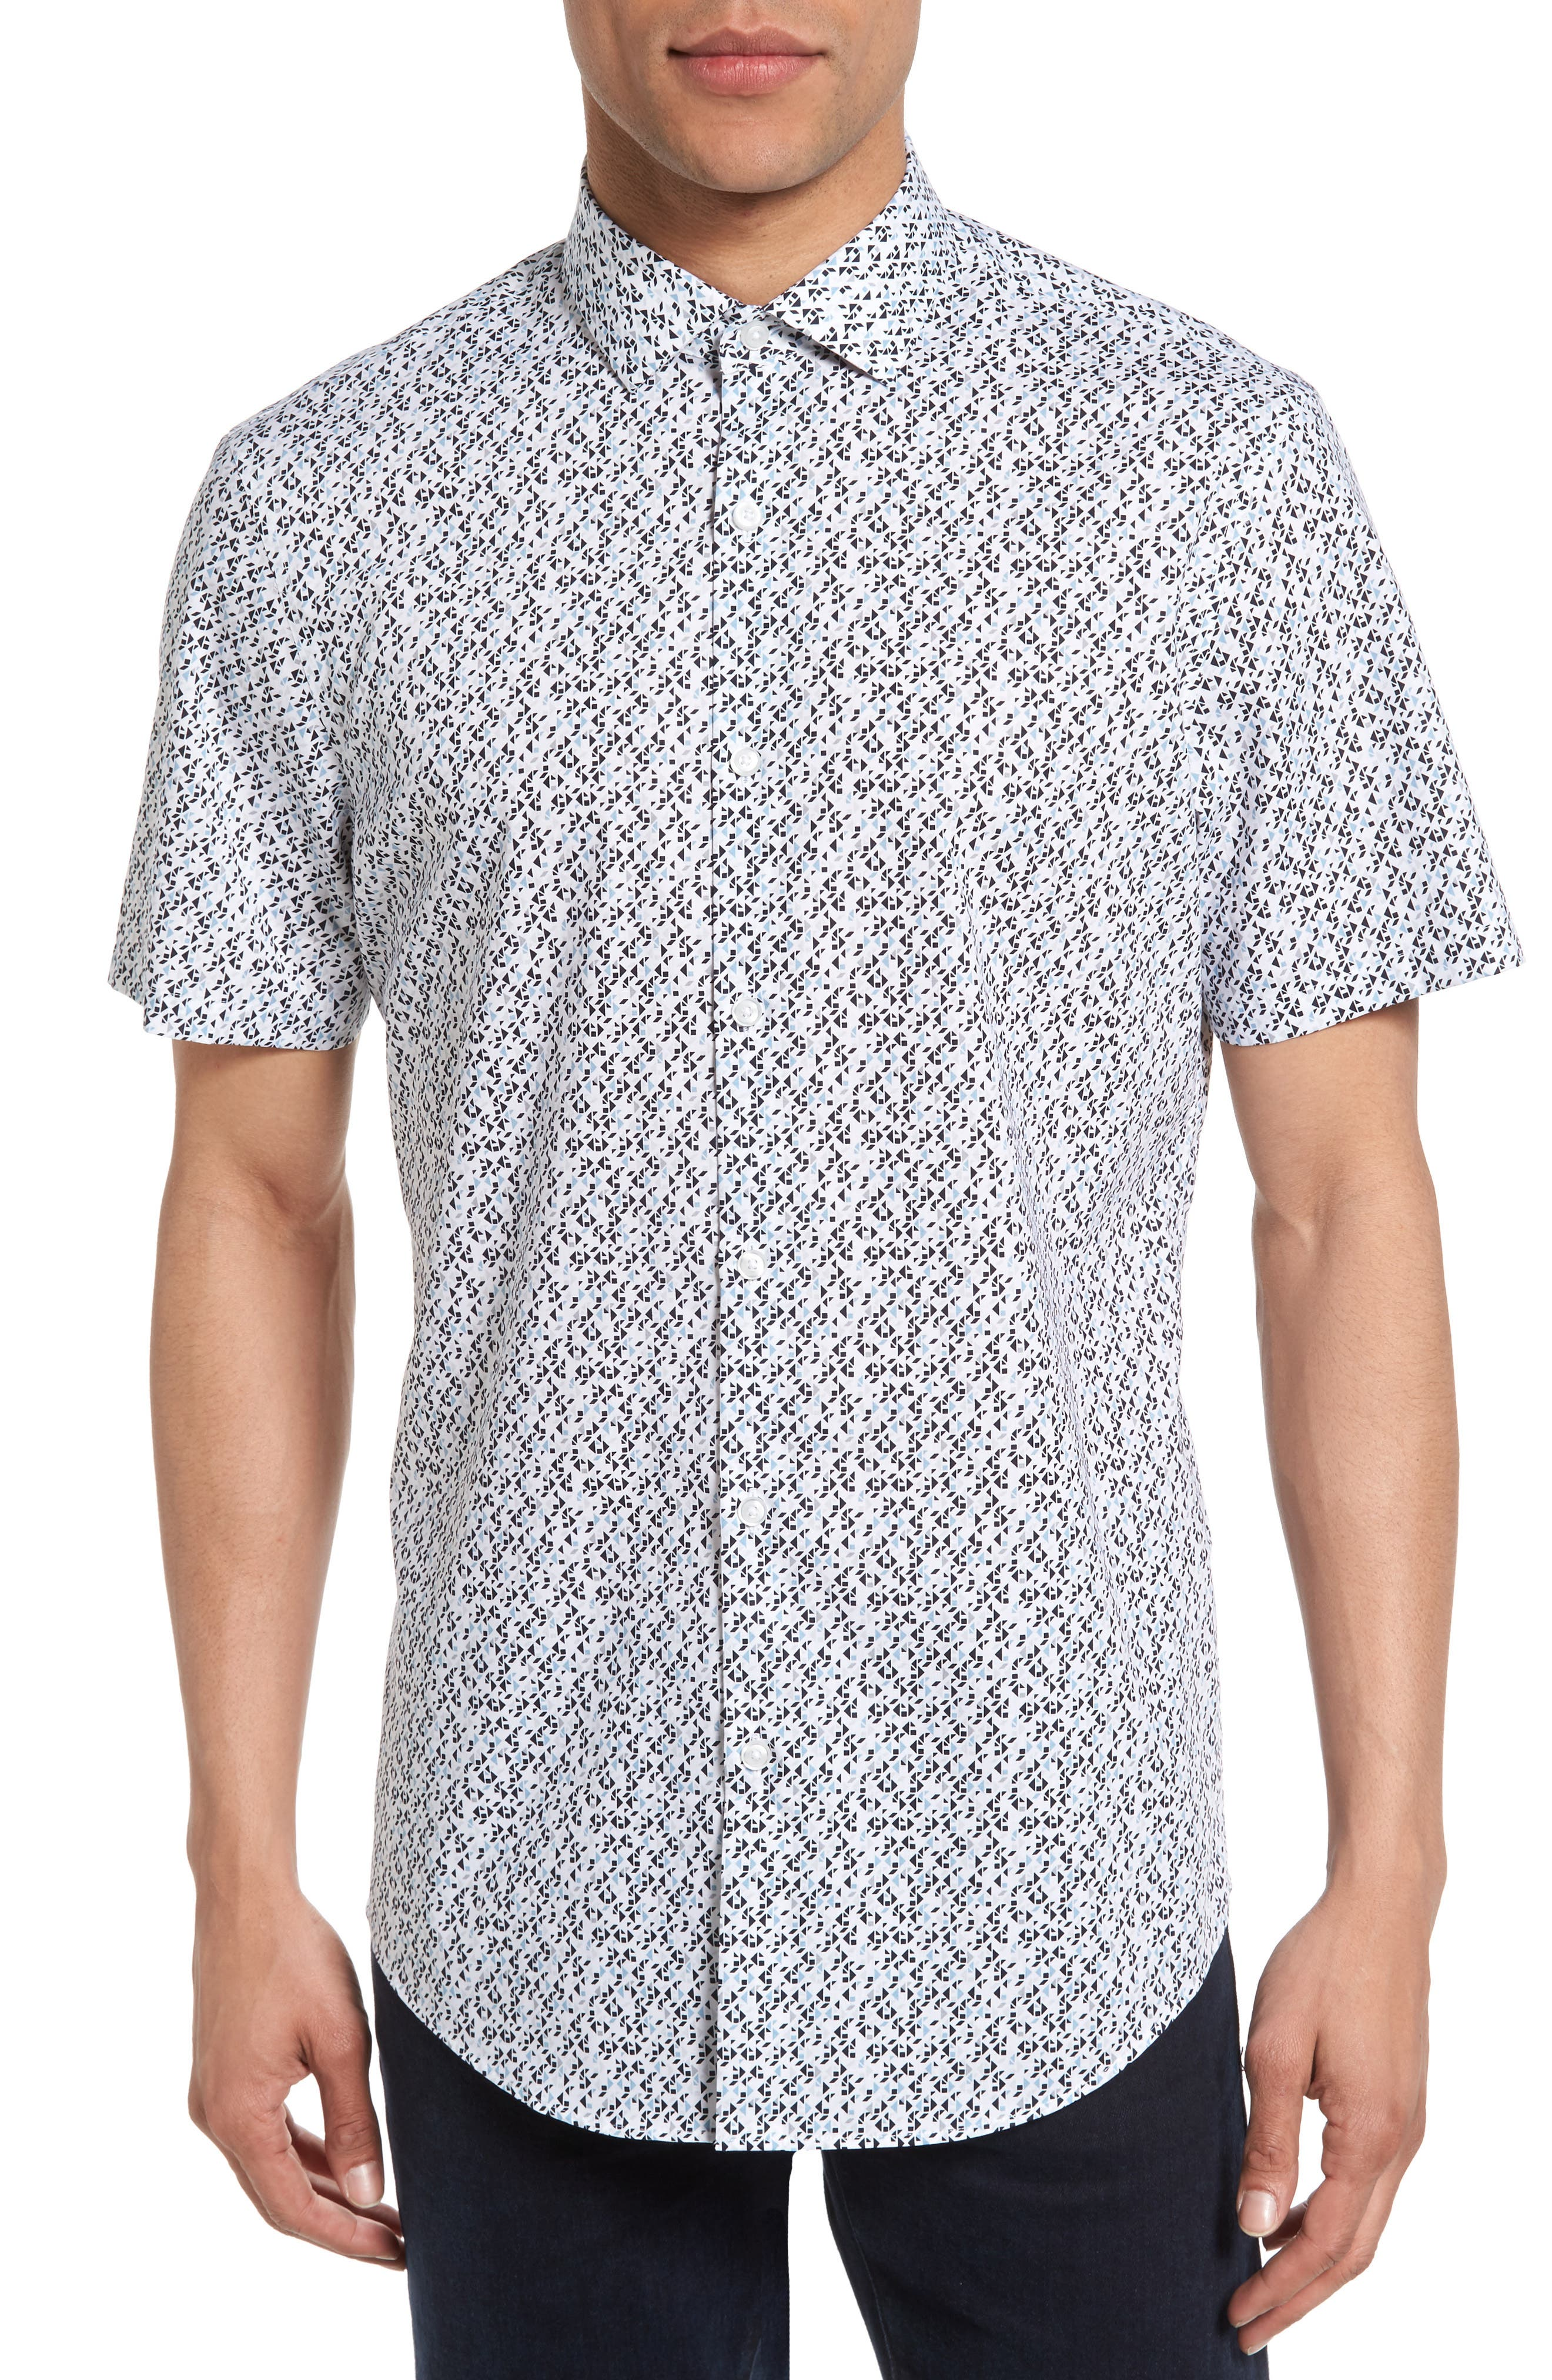 No-Iron Geo Print Woven Shirt,                         Main,                         color, Grey Lunar White Triangle Geo